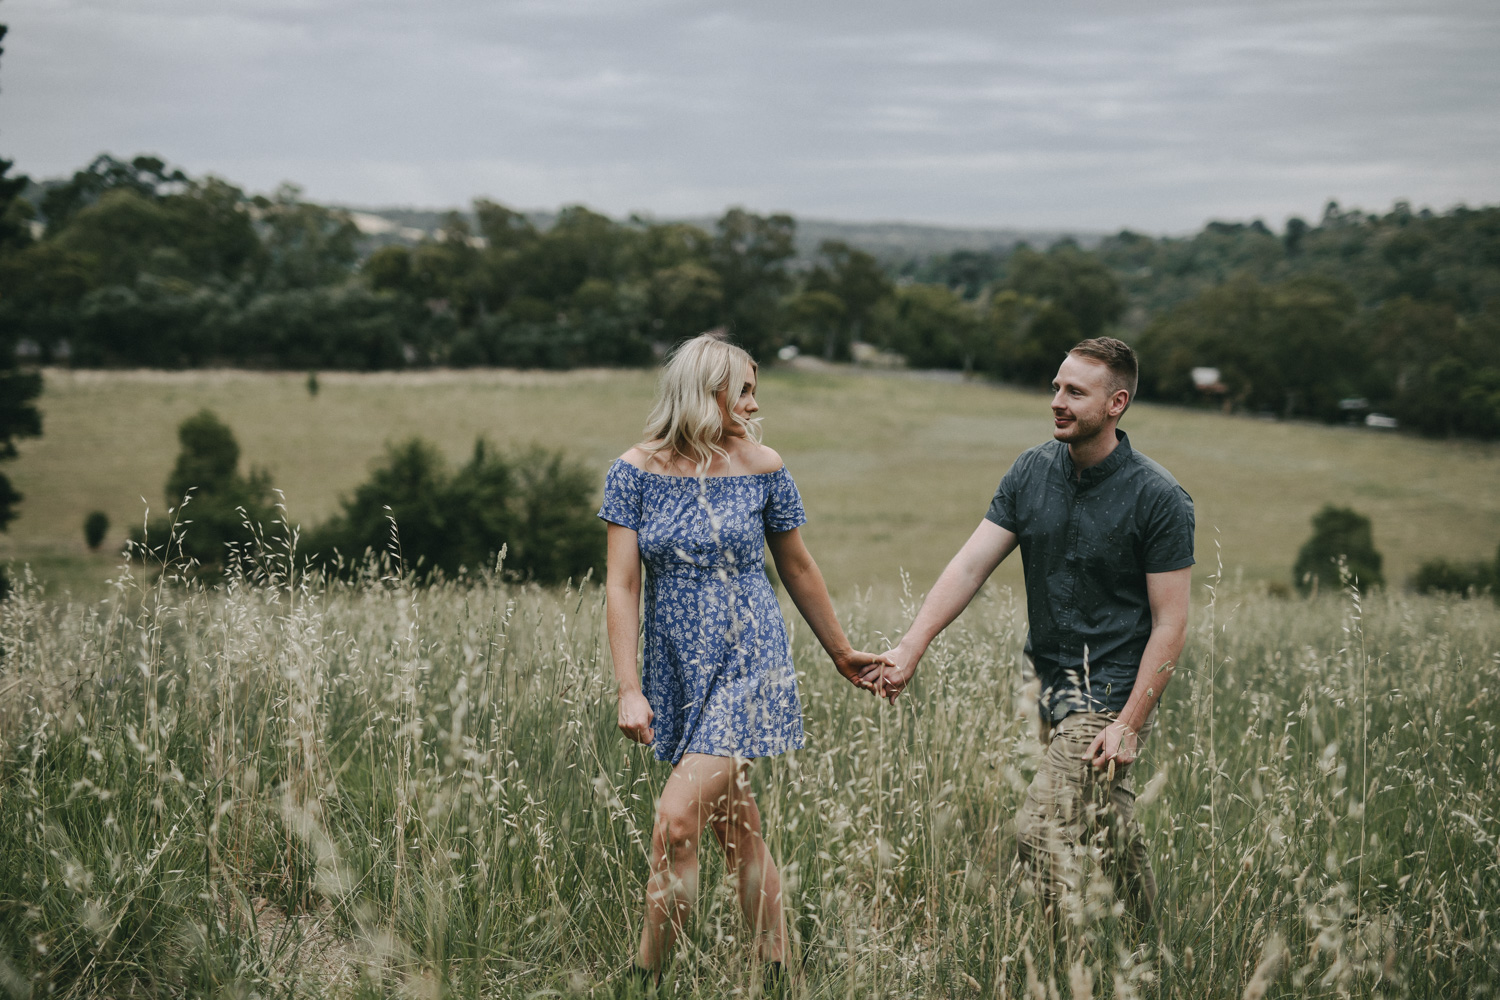 christopher morrison photographer_adelaide wedding photographer_adelaide hills engagment session_web_77.jpg